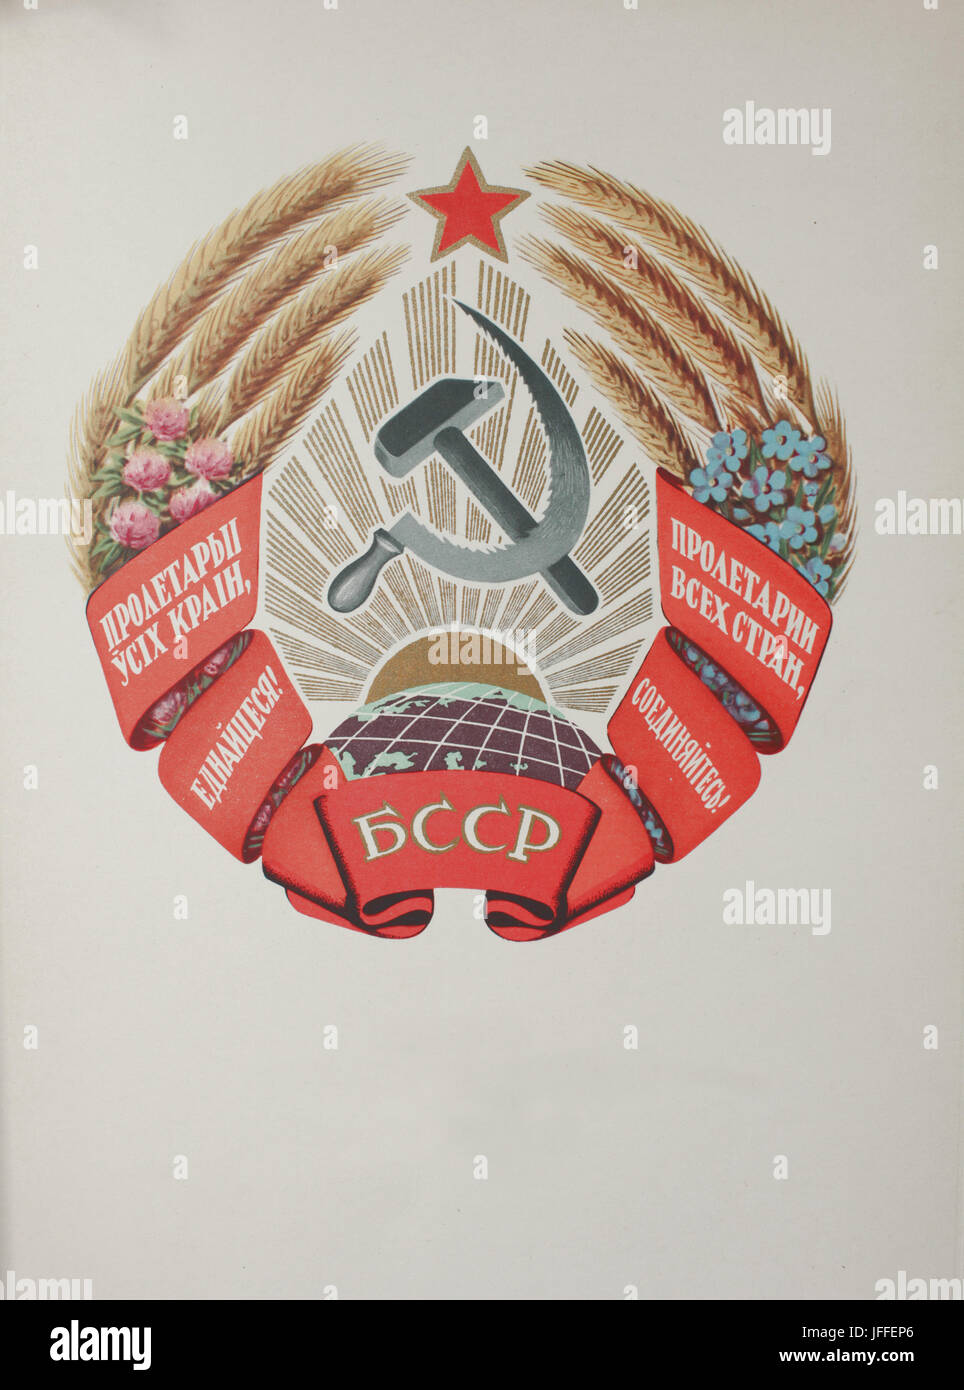 state coat of arms Belarus  under USSR - Stock Image